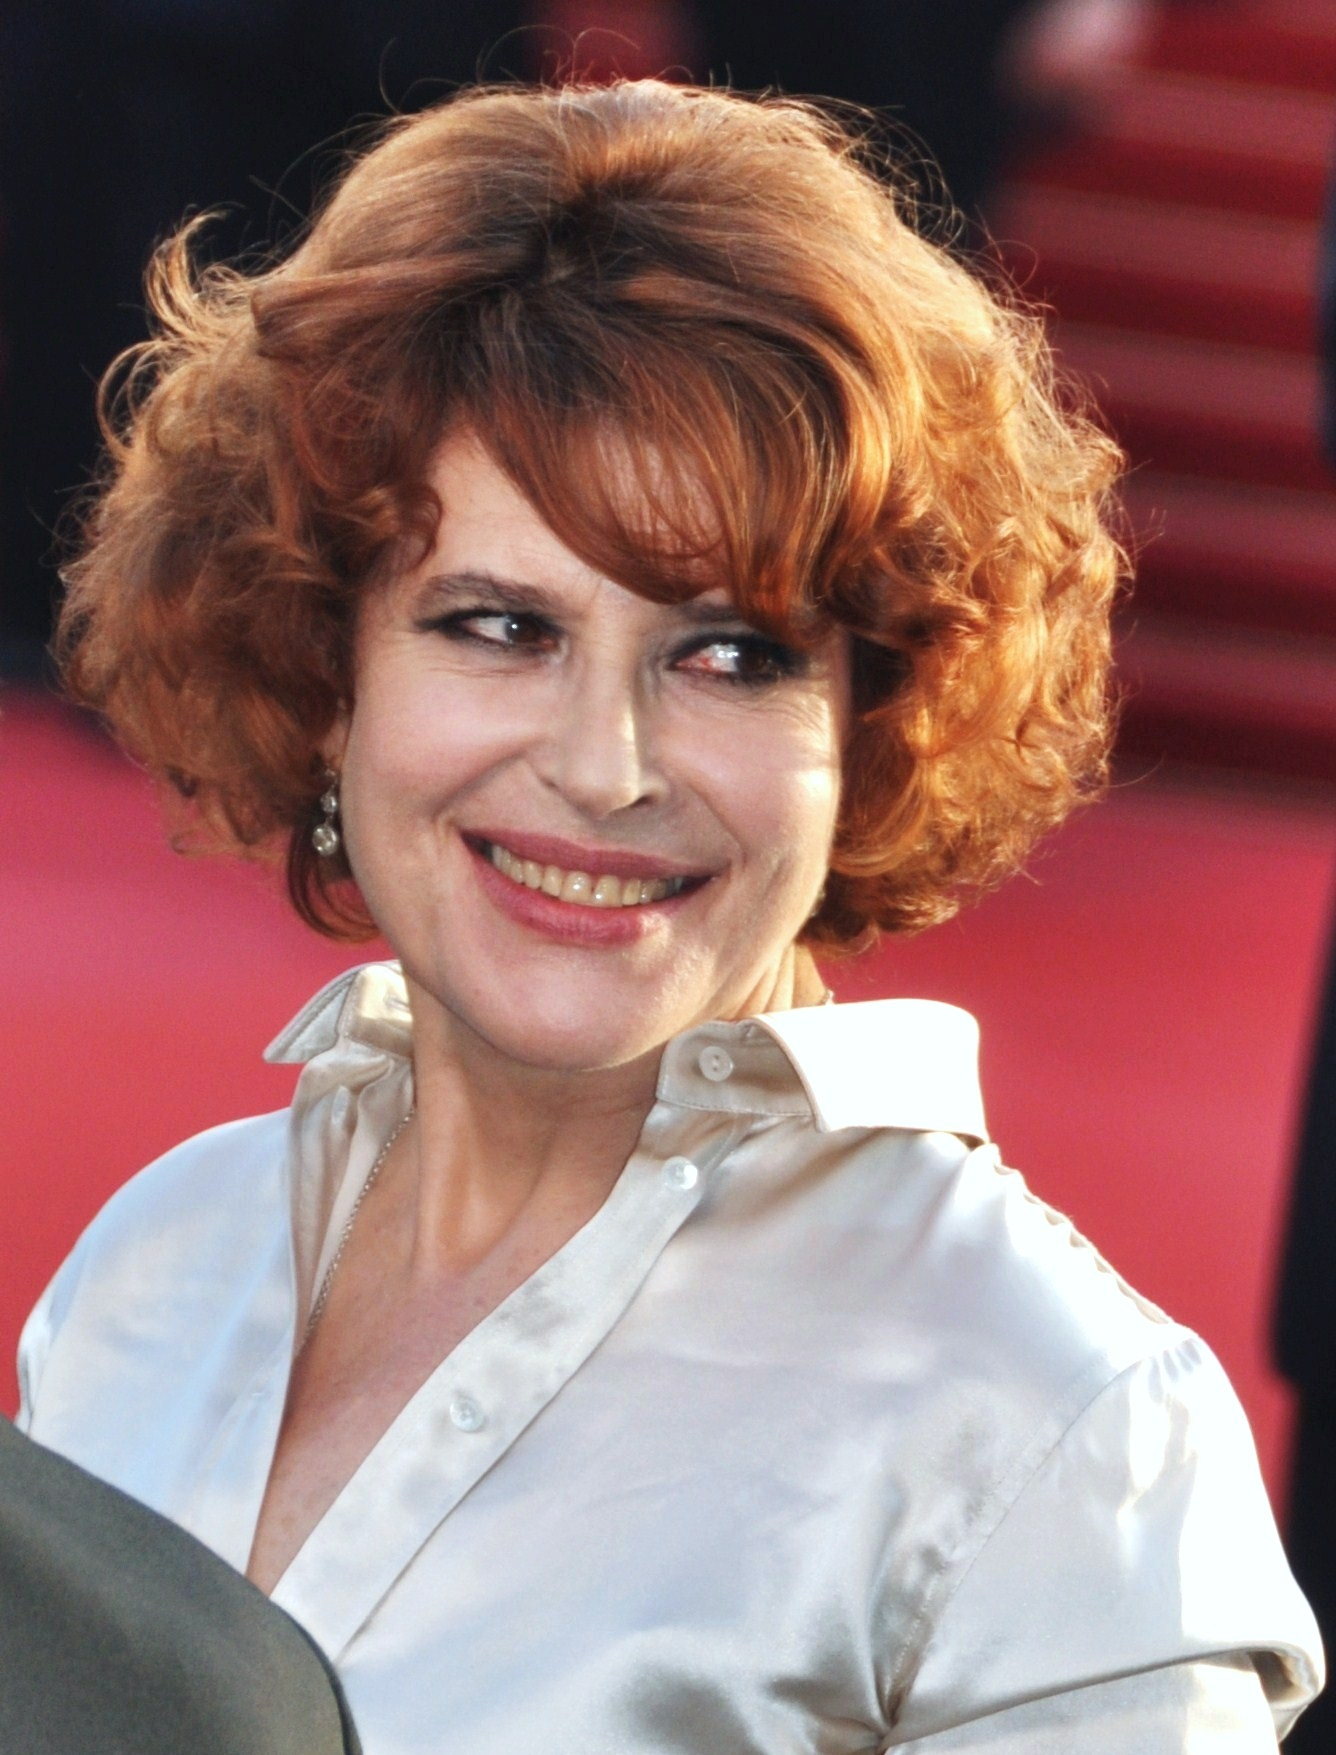 fanny ardant stylefanny ardant young, fanny ardant putin, fanny ardant about russia, fanny ardant arte, fanny ardant russie, fanny ardant height, fanny ardant interview arte, fanny ardant imdb, fanny ardant biographie, fanny ardant wikipedia, fanny ardant style, fanny ardant sputnik, fanny ardant emmanuelle beart, fanny ardant tumblr, fanny ardant pics, fanny ardant interview russie, fanny ardant photos, fanny ardant arte 28, fanny ardant france 5, fanny ardant actress